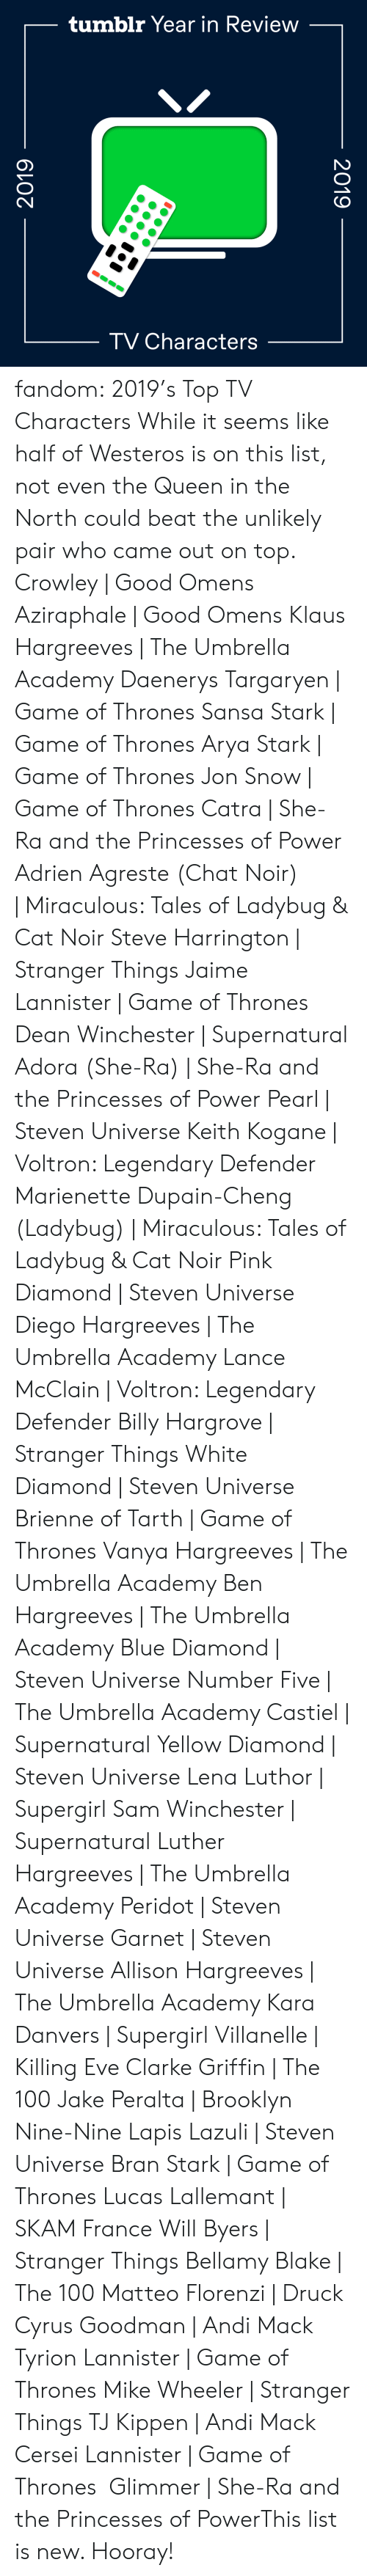 Steven Universe: tumblr Year in Review  TV Characters  2019  2019 fandom:  2019's Top TV Characters  While it seems like half of Westeros is on this list, not even the Queen in the North could beat the unlikely pair who came out on top.  Crowley | Good Omens  Aziraphale | Good Omens  Klaus Hargreeves | The Umbrella Academy  Daenerys Targaryen | Game of Thrones  Sansa Stark | Game of Thrones  Arya Stark | Game of Thrones  Jon Snow | Game of Thrones  Catra | She-Ra and the Princesses of Power  Adrien Agreste (Chat Noir) | Miraculous: Tales of Ladybug & Cat Noir  Steve Harrington | Stranger Things  Jaime Lannister | Game of Thrones  Dean Winchester | Supernatural  Adora (She-Ra) | She-Ra and the Princesses of Power  Pearl | Steven Universe  Keith Kogane | Voltron: Legendary Defender  Marienette Dupain-Cheng (Ladybug) | Miraculous: Tales of Ladybug & Cat Noir  Pink Diamond | Steven Universe  Diego Hargreeves | The Umbrella Academy  Lance McClain | Voltron: Legendary Defender  Billy Hargrove | Stranger Things  White Diamond | Steven Universe  Brienne of Tarth | Game of Thrones  Vanya Hargreeves | The Umbrella Academy  Ben Hargreeves | The Umbrella Academy  Blue Diamond | Steven Universe  Number Five | The Umbrella Academy  Castiel | Supernatural  Yellow Diamond | Steven Universe  Lena Luthor | Supergirl  Sam Winchester | Supernatural  Luther Hargreeves | The Umbrella Academy  Peridot | Steven Universe  Garnet | Steven Universe  Allison Hargreeves | The Umbrella Academy  Kara Danvers | Supergirl  Villanelle | Killing Eve  Clarke Griffin | The 100  Jake Peralta | Brooklyn Nine-Nine  Lapis Lazuli | Steven Universe  Bran Stark | Game of Thrones  Lucas Lallemant | SKAM France  Will Byers | Stranger Things  Bellamy Blake | The 100  Matteo Florenzi | Druck  Cyrus Goodman | Andi Mack  Tyrion Lannister | Game of Thrones  Mike Wheeler | Stranger Things  TJ Kippen | Andi Mack  Cersei Lannister | Game of Thrones  Glimmer | She-Ra and the Princesses of PowerThis list is new. Hooray!